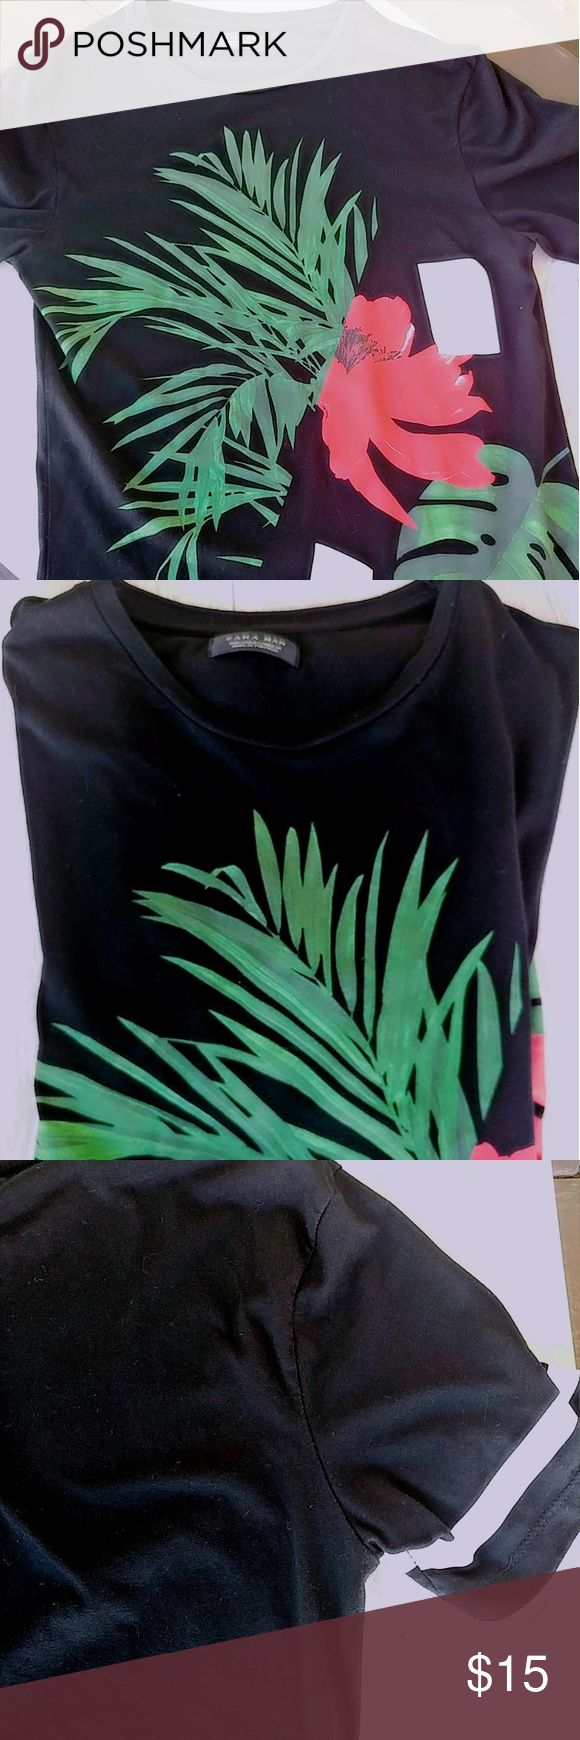 NEW ZARA FOR MEN FIT CUT PRINT TSHIRT IN BLACK BLACK ZARA FOR MEN FIT STYLE  SIZE MEDIUM BUT WILL BE BETTER FOR A SMALL SIZE  NEVER USED.  TAGS ARE GONE  BOUGHT IN ZARA MADRID.  EXELLENT SOFT QUALITY, VERY RICH LOOKING. Zara Shirts Tees - Short Sleeve